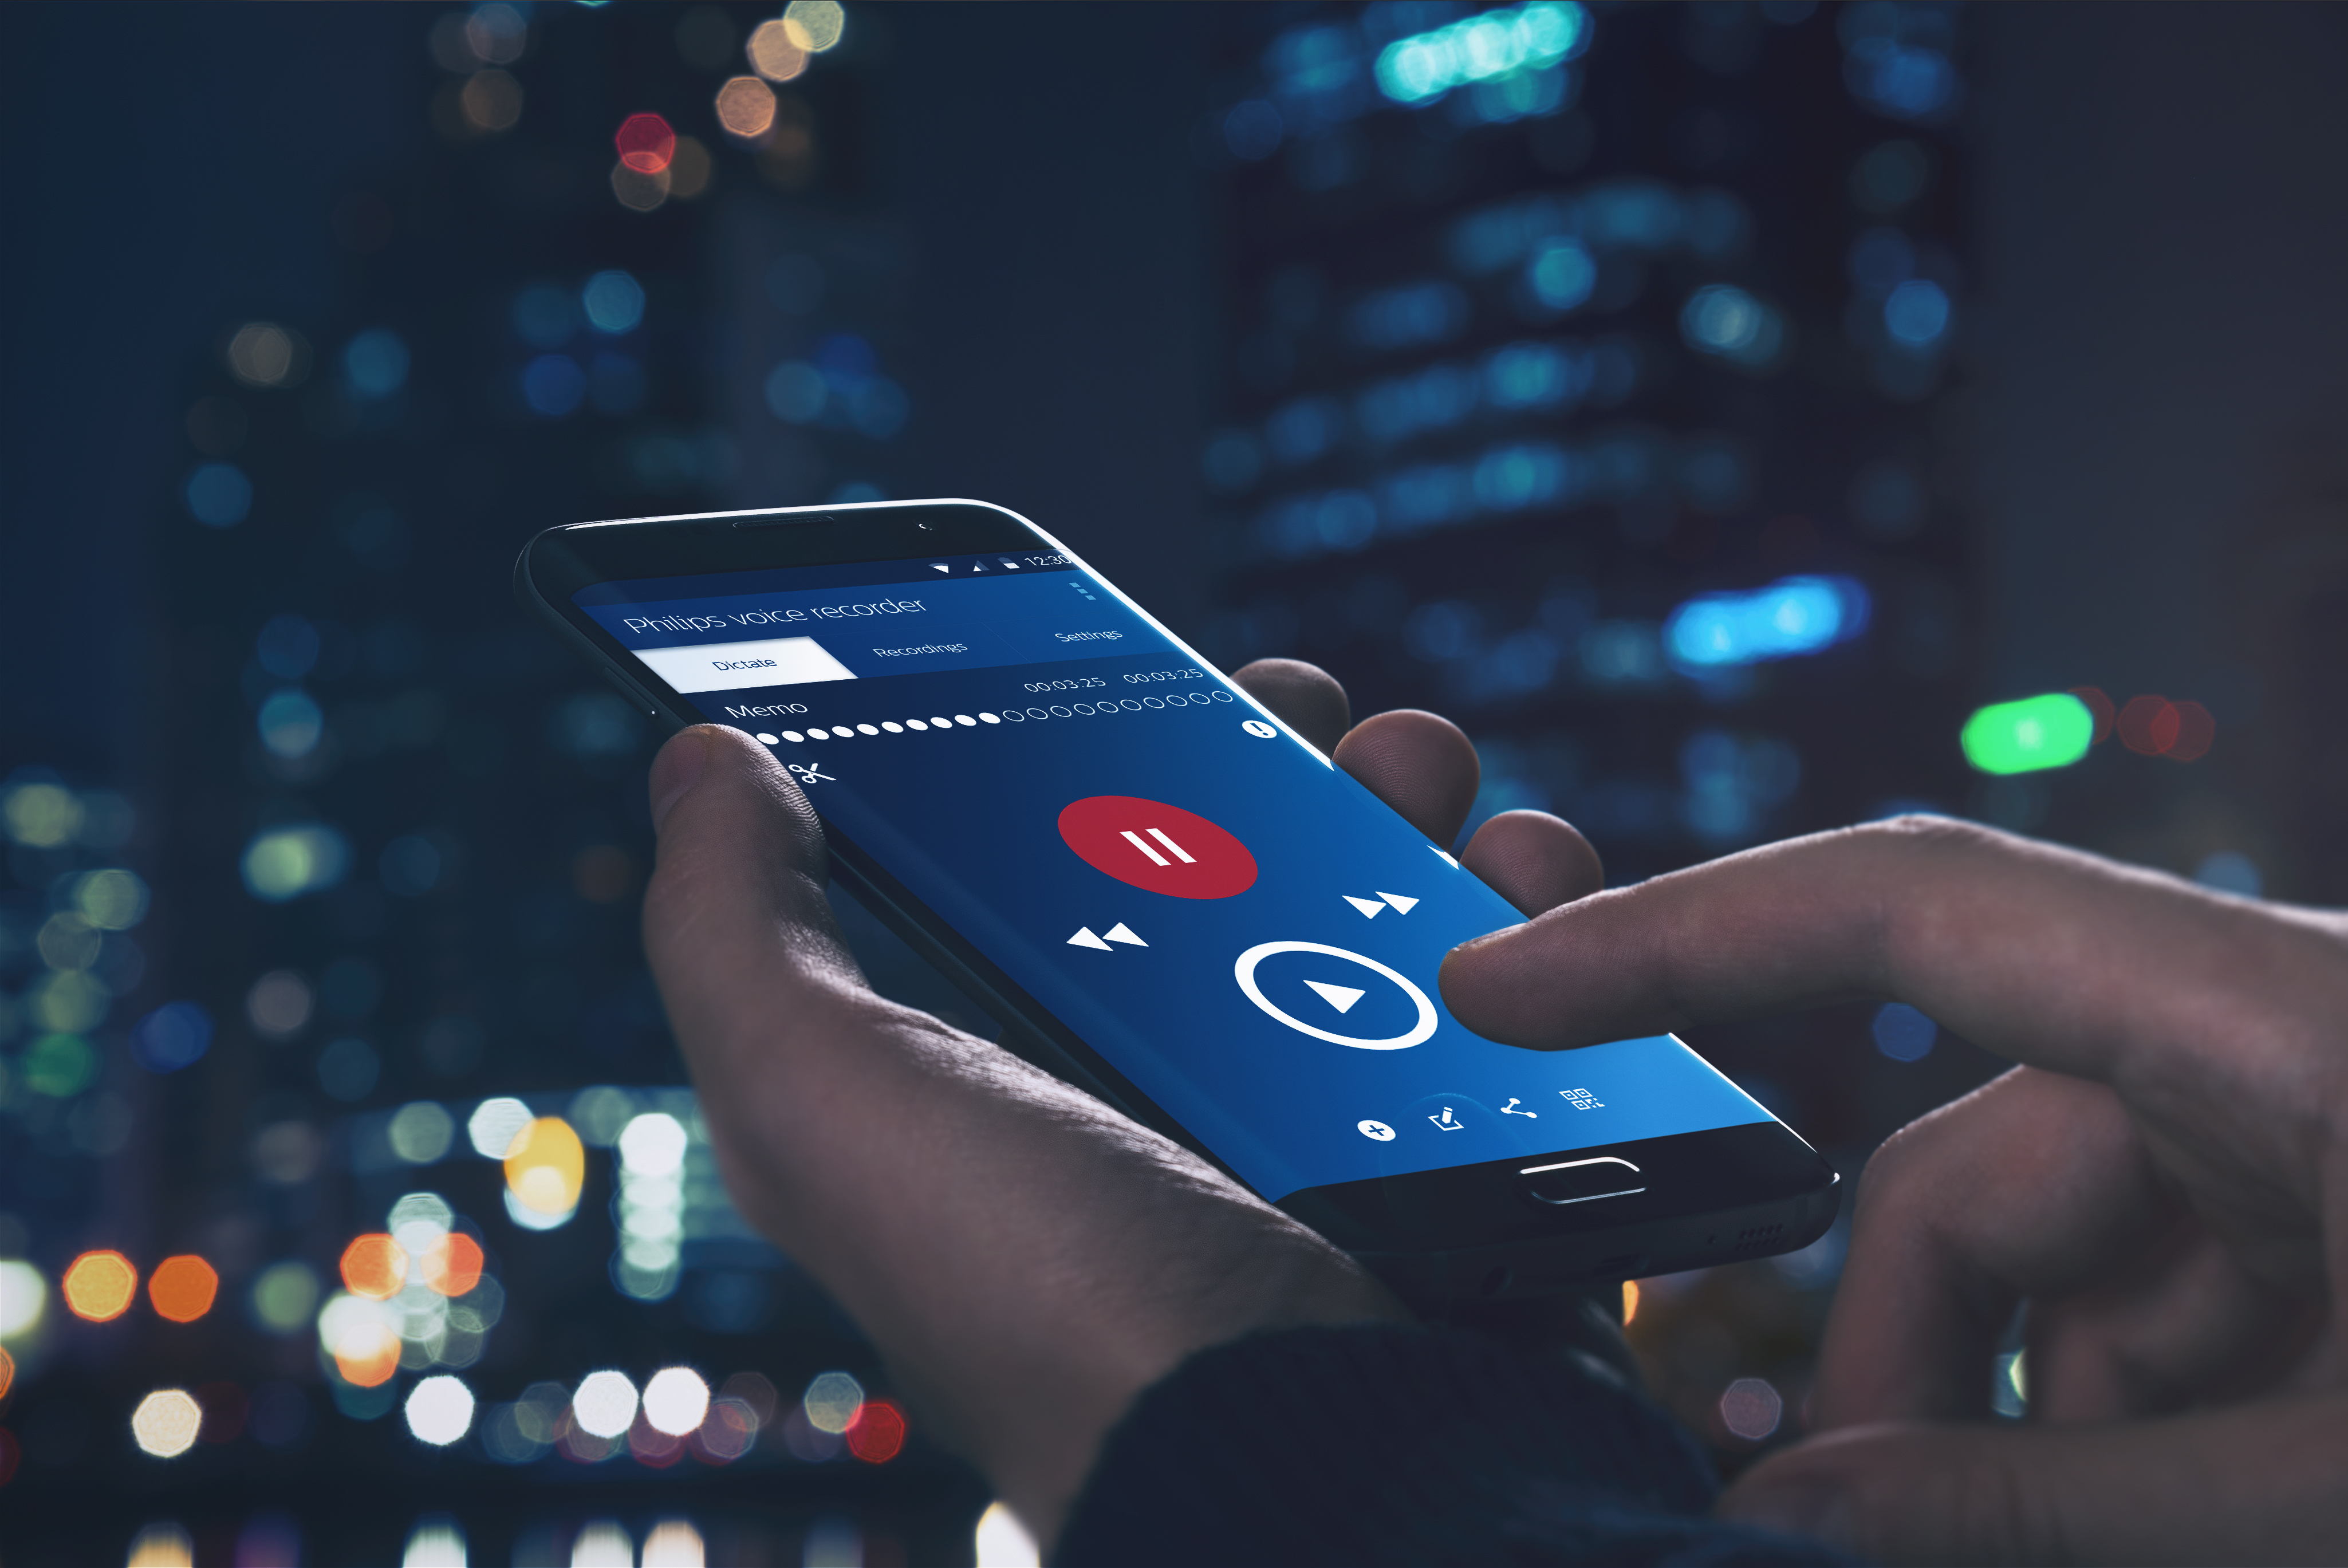 Launch Of A New Version The Philips Voice Recorder App For Speech Processing Solutions Christina Angerer 43 1605 291 488 Christinaangererspeechcom Philipscom Dictation